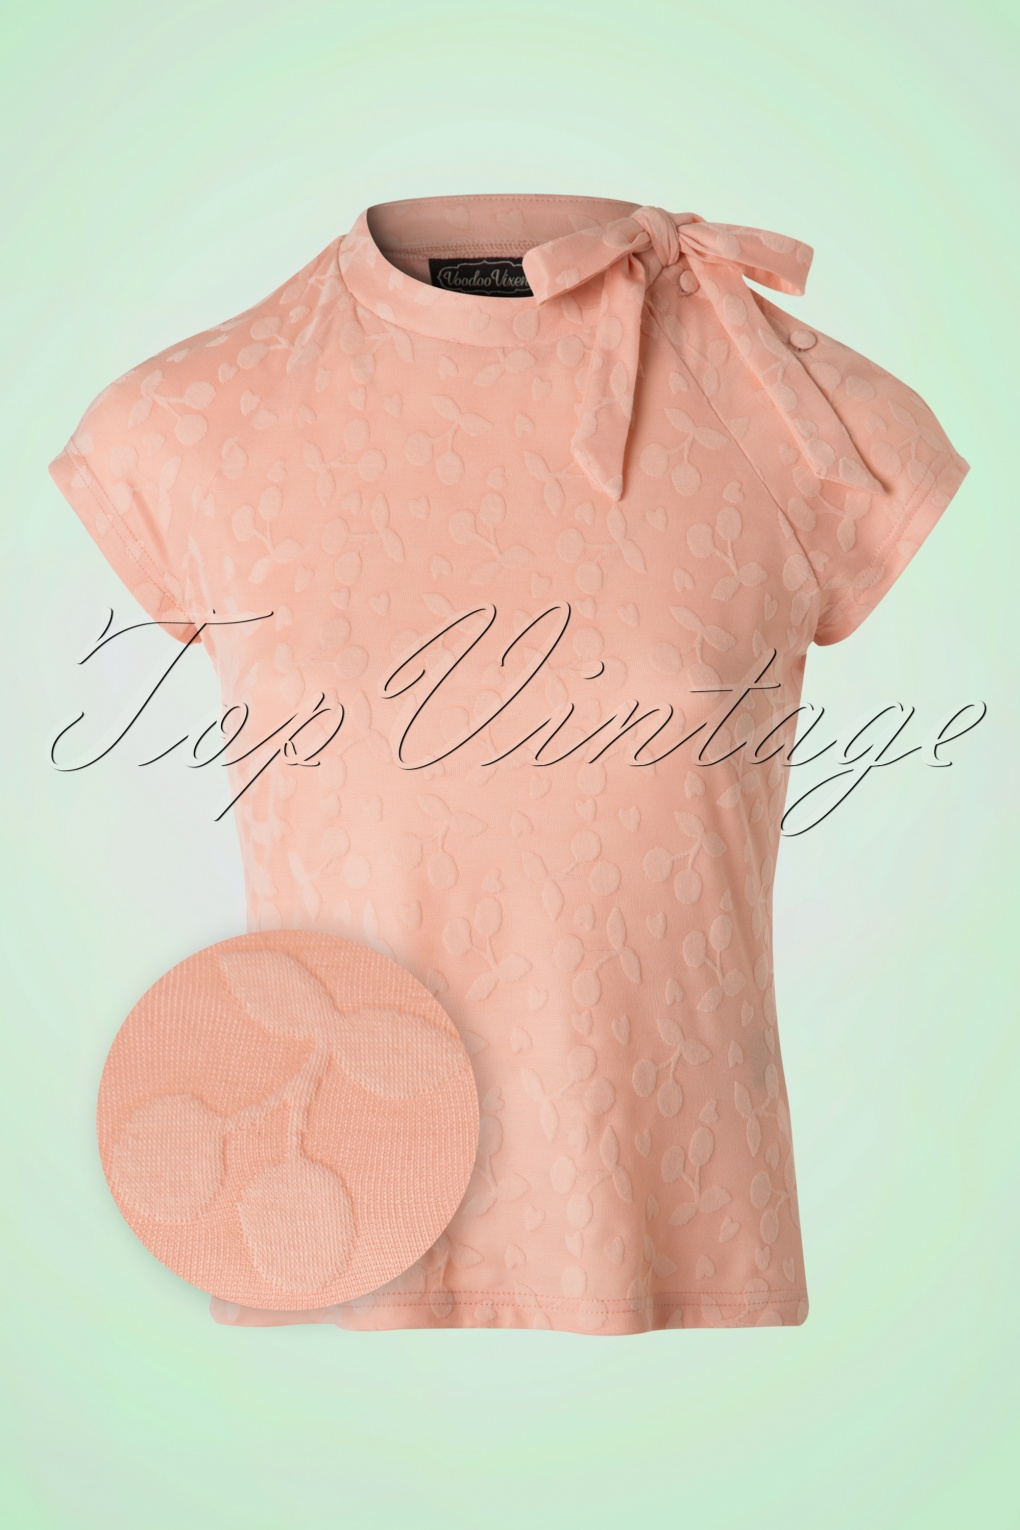 1950s Rockabilly & Pinup Tops, Shirts, Blouses 50s Ashlea Cherry Top in Pink £26.23 AT vintagedancer.com